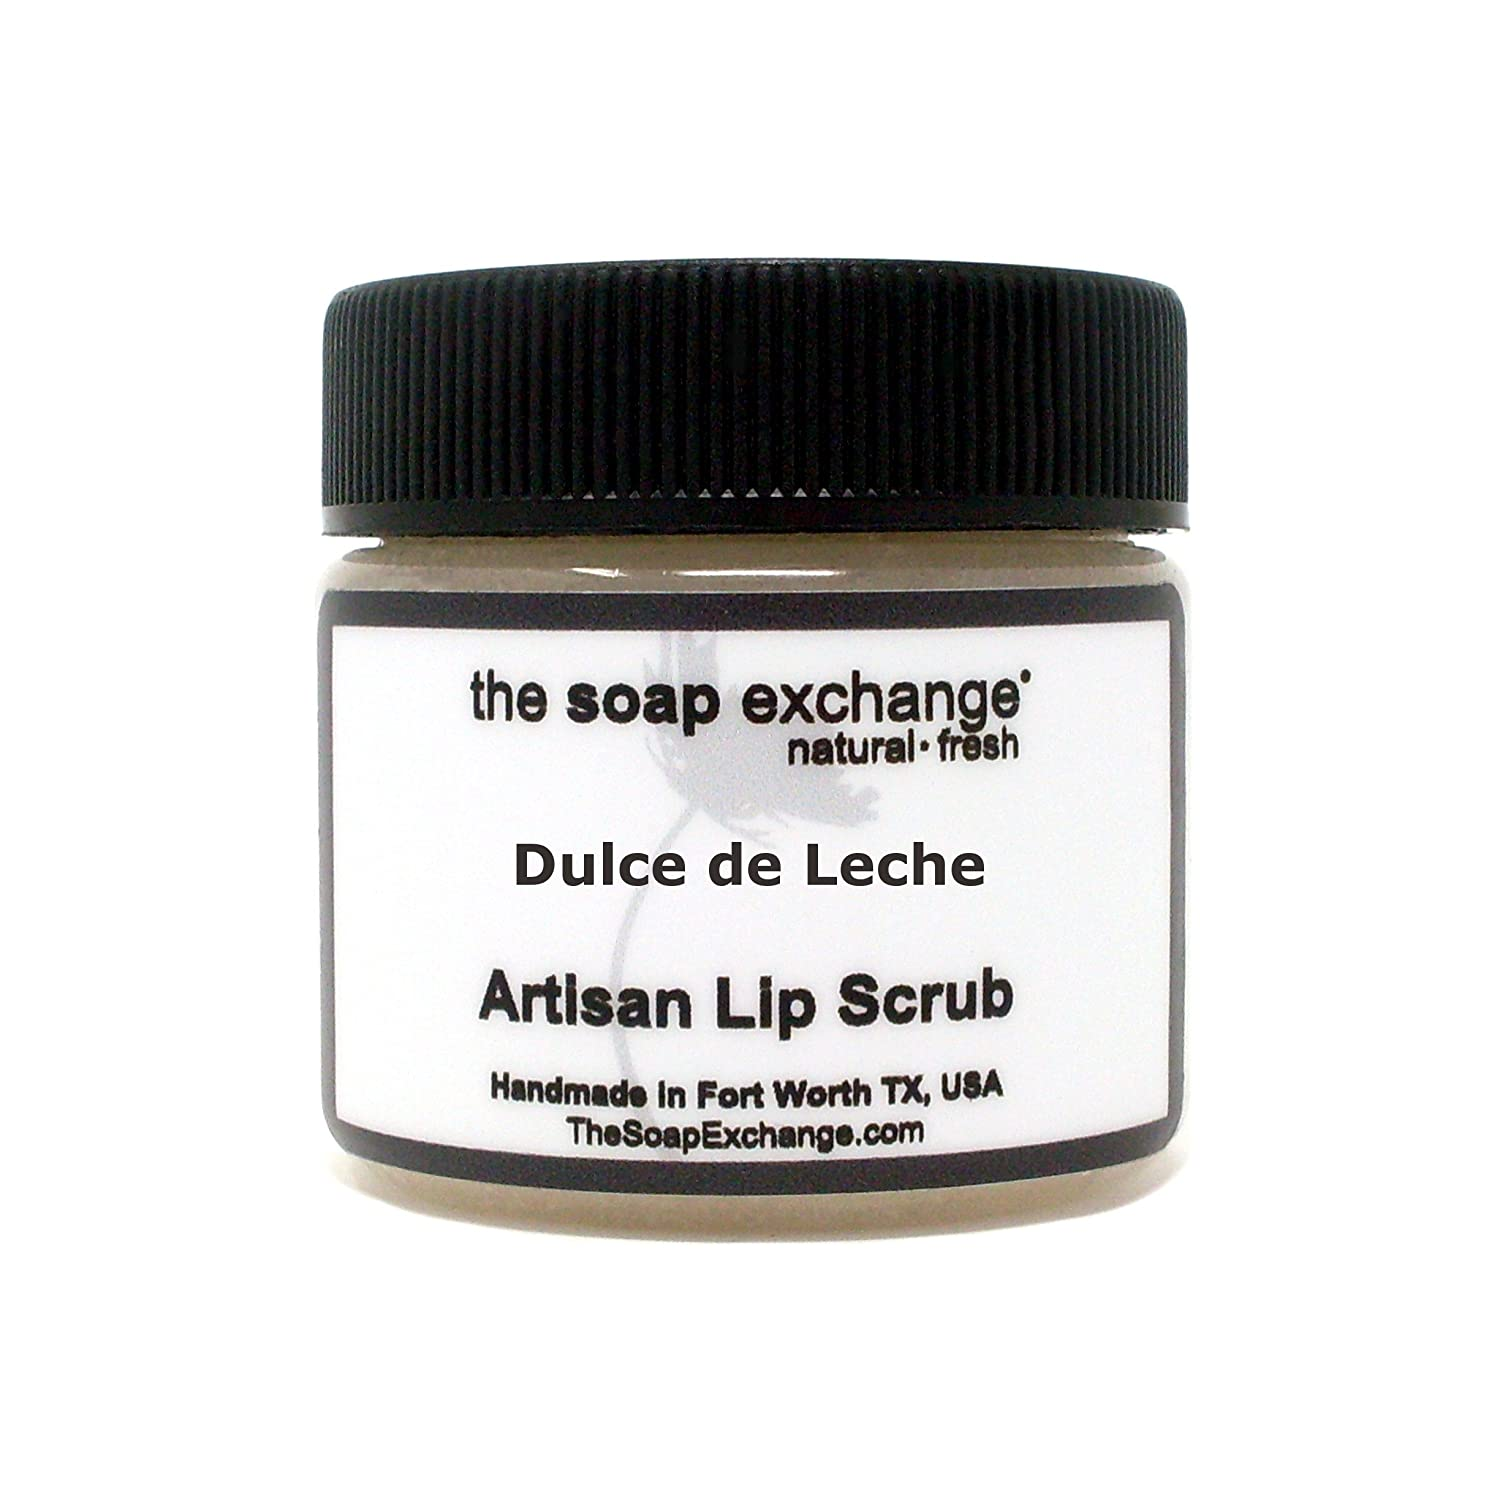 Amazon.com : The Soap Exchange Lip Scrub - Caramel Flavor - Hand Crafted 1.5 oz / 42.5 g Natural Lip Care, Artisan Lip Treatment, Exfoliate, Hydrate, ...